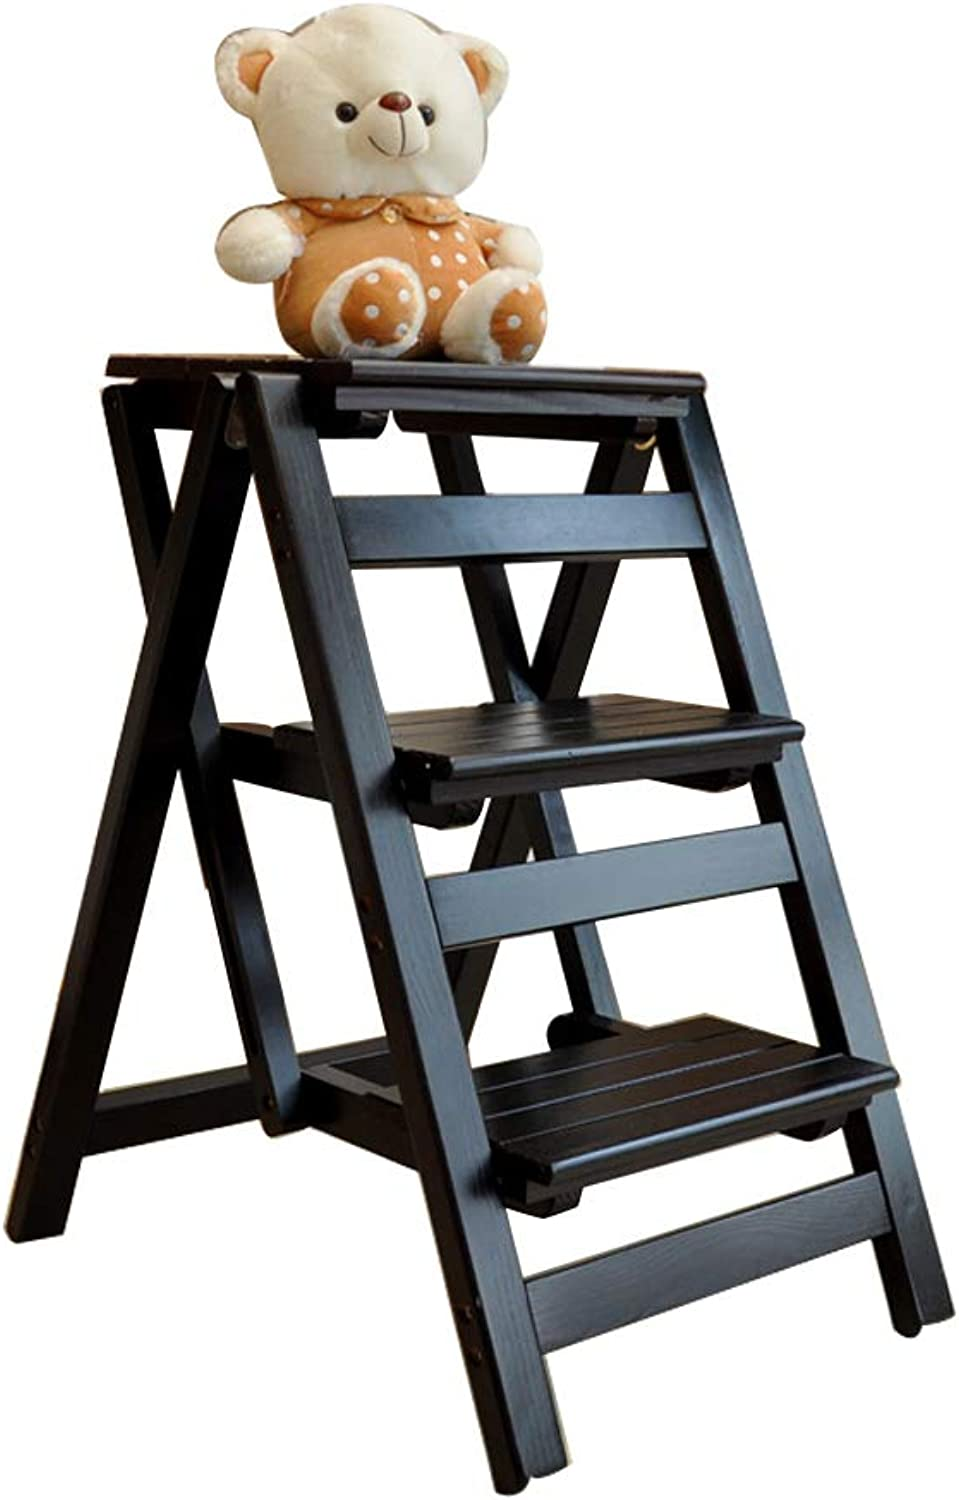 Solid Wood Step Stool Folding Portable Ladder 3 Layer Pedal Indoor Climbing Ladder Herringbone Home Kitchen Bathroom Library Home Decoration Max Load 150kg Black